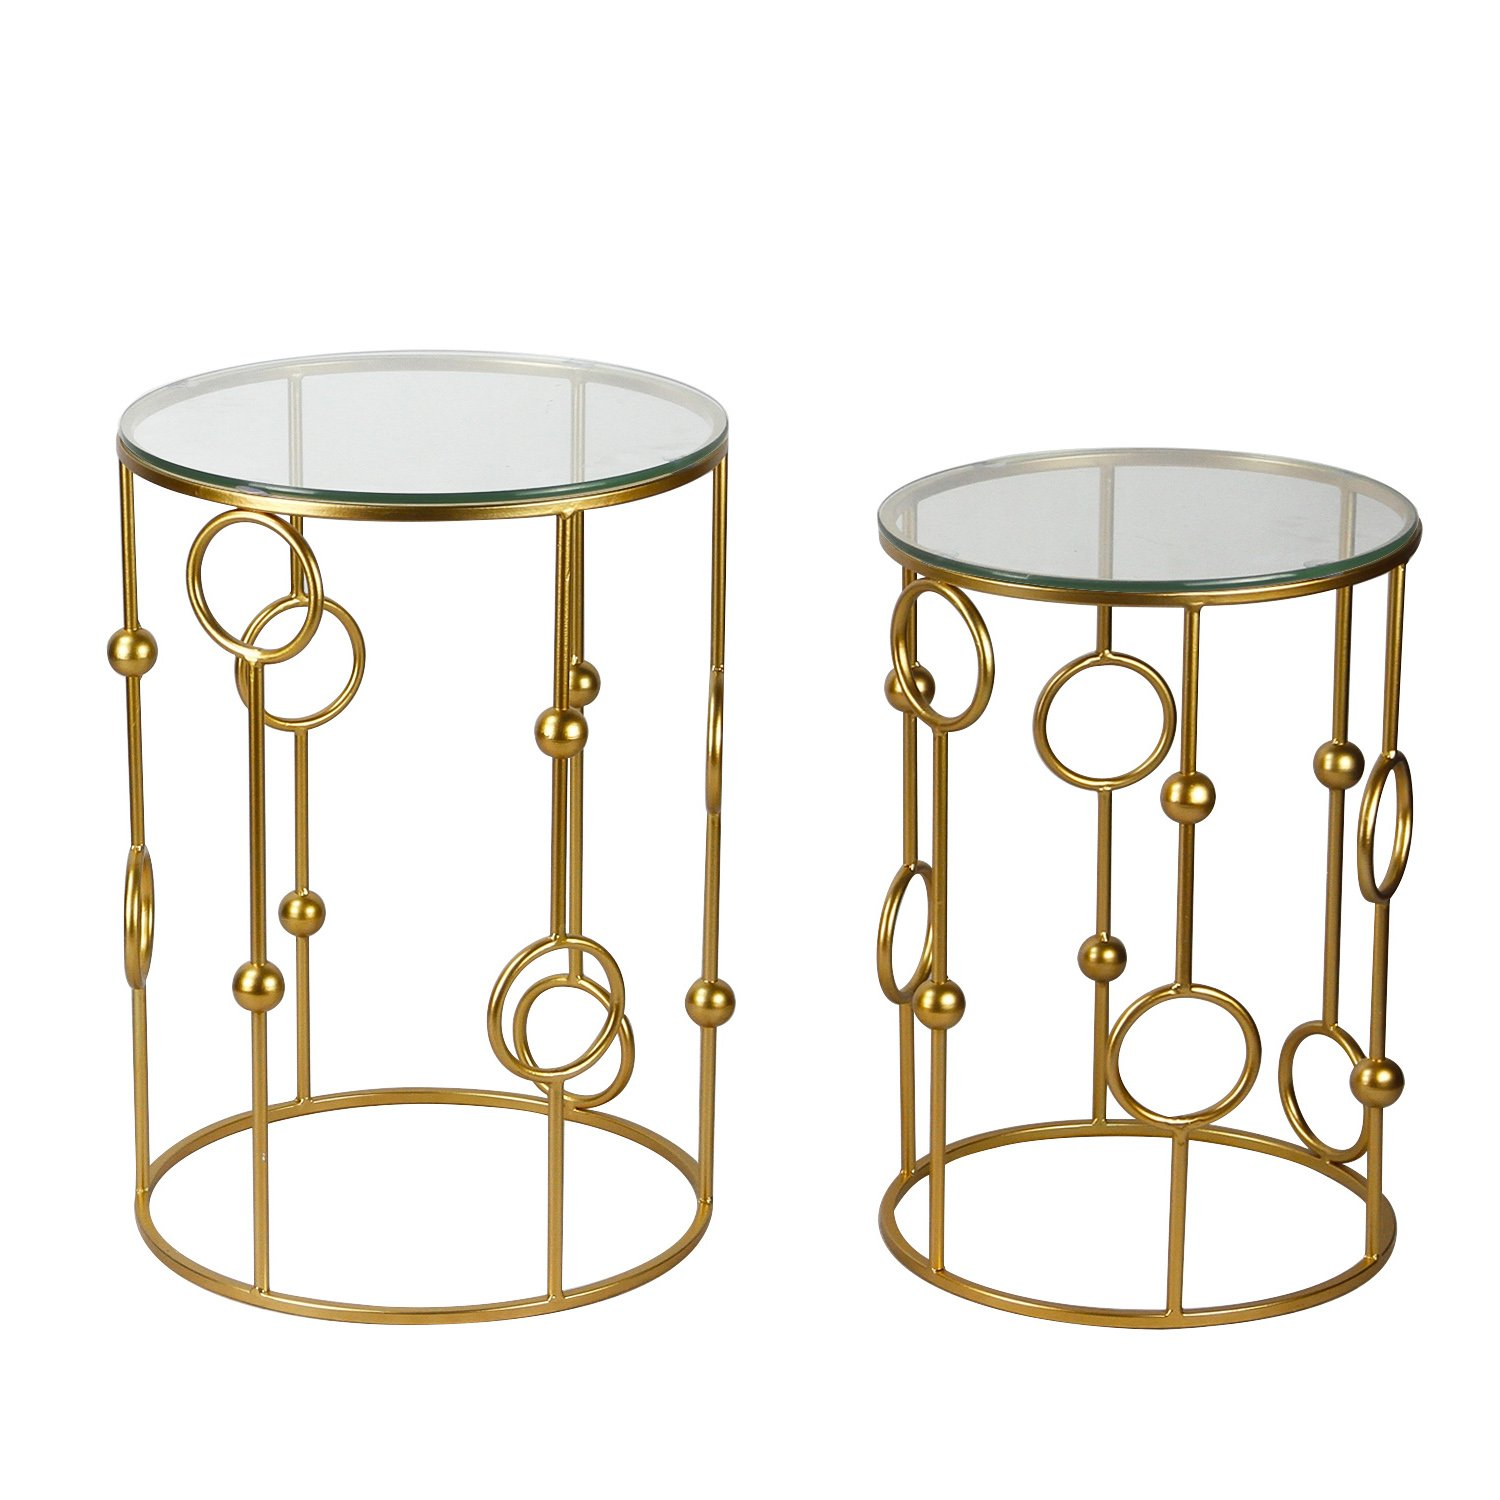 ELEGAN Accent Golden Cylindrical Metal Coffee Table (Set of 2) by Edeco